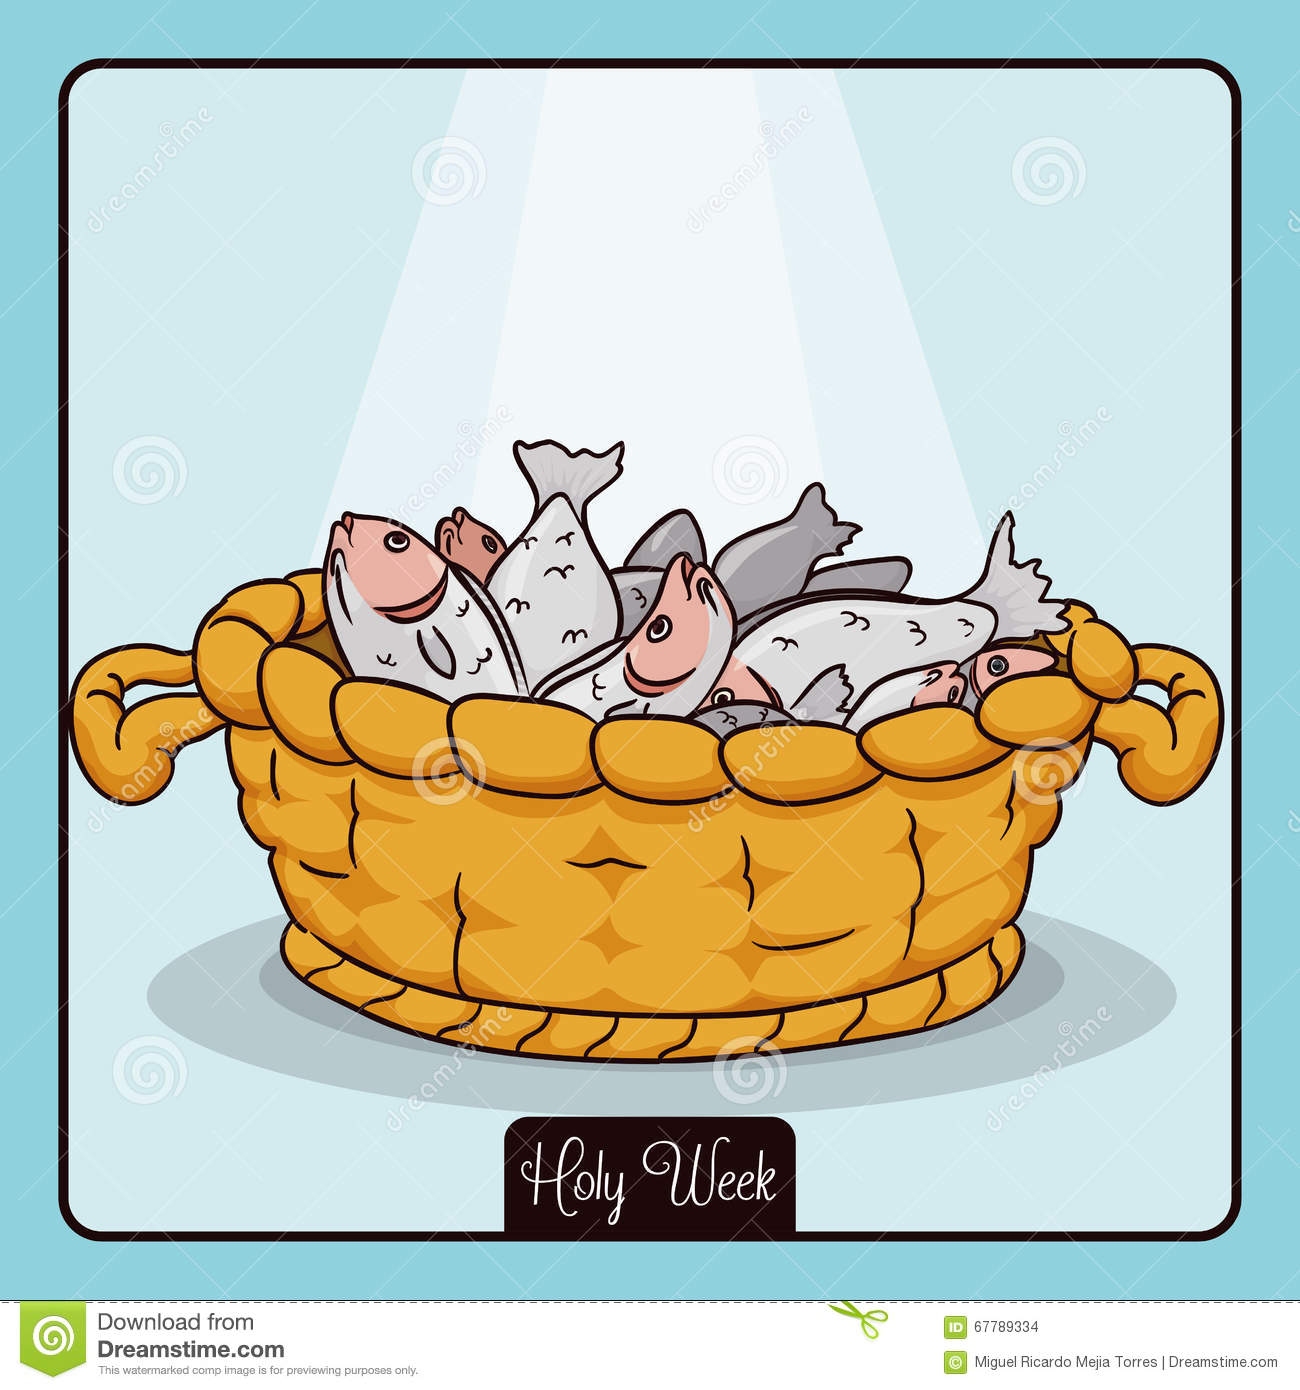 Basket with Fishes for Multiplication Miracle of Jesus, Vector Illustration